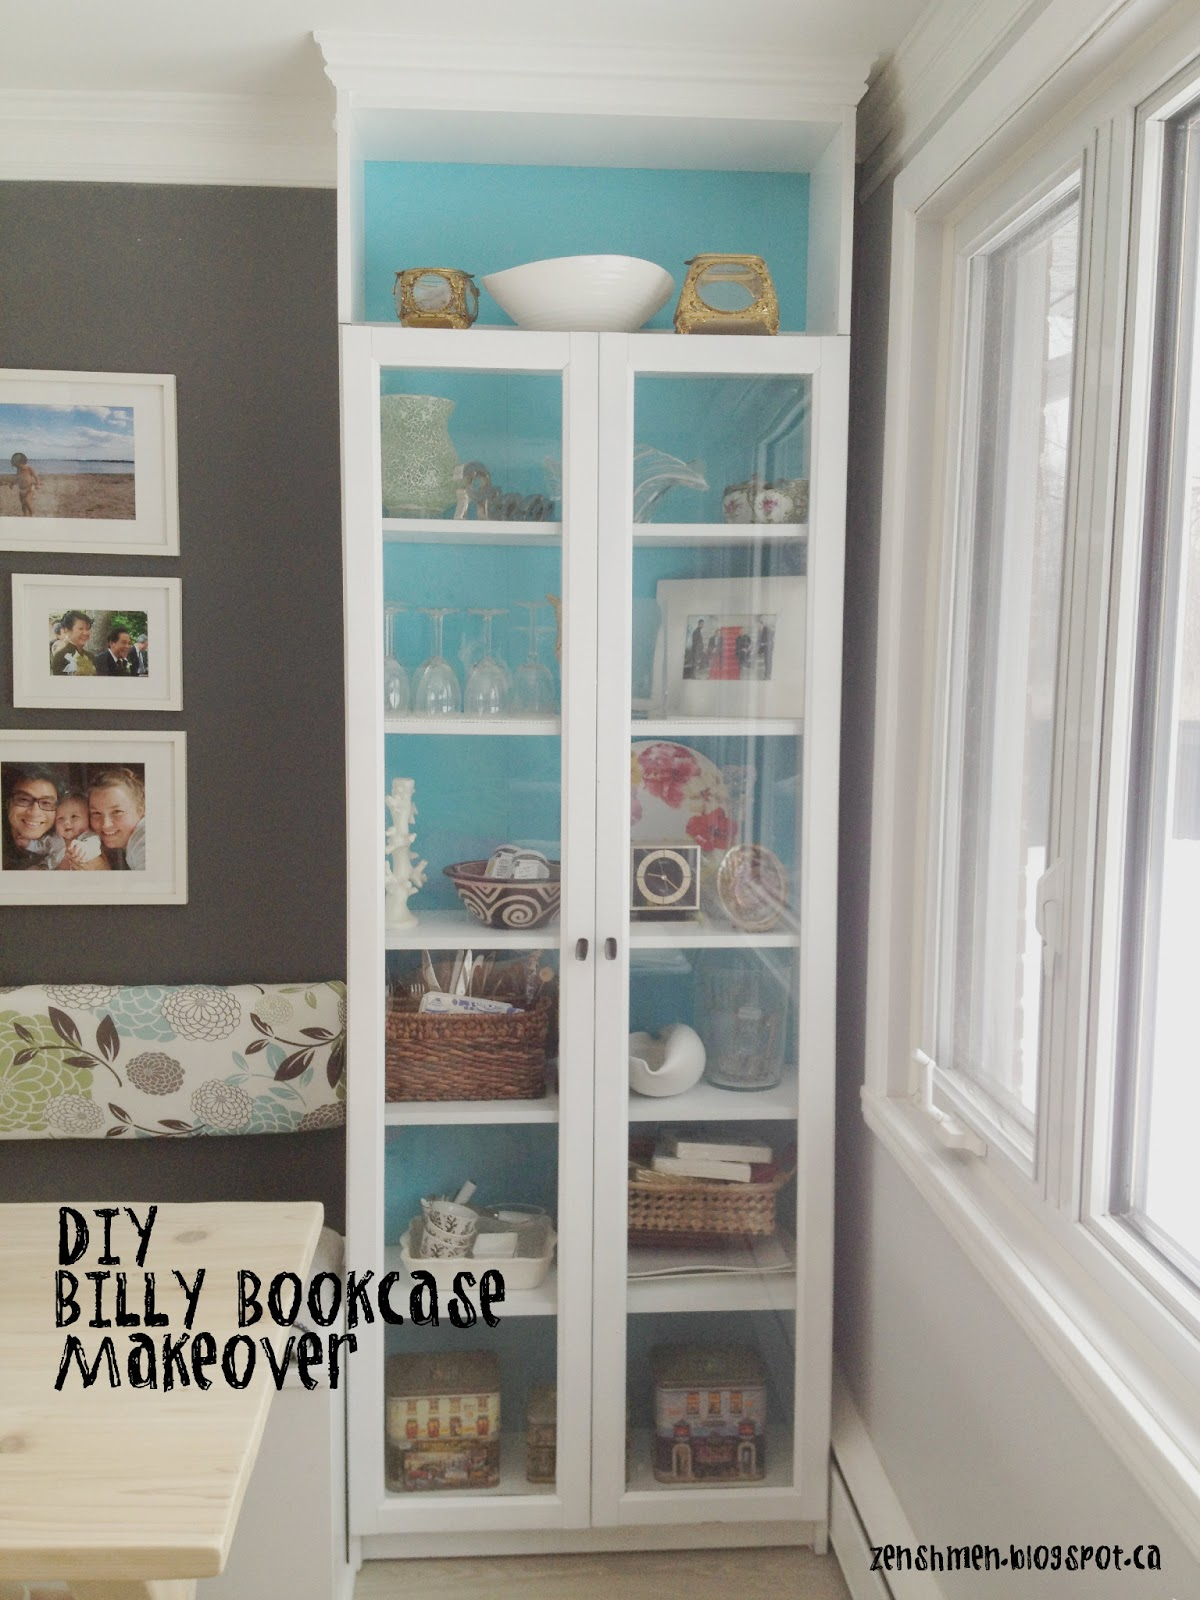 Zen Shmen DIY Billy Bookcase Makeover - Diy billy bookcase